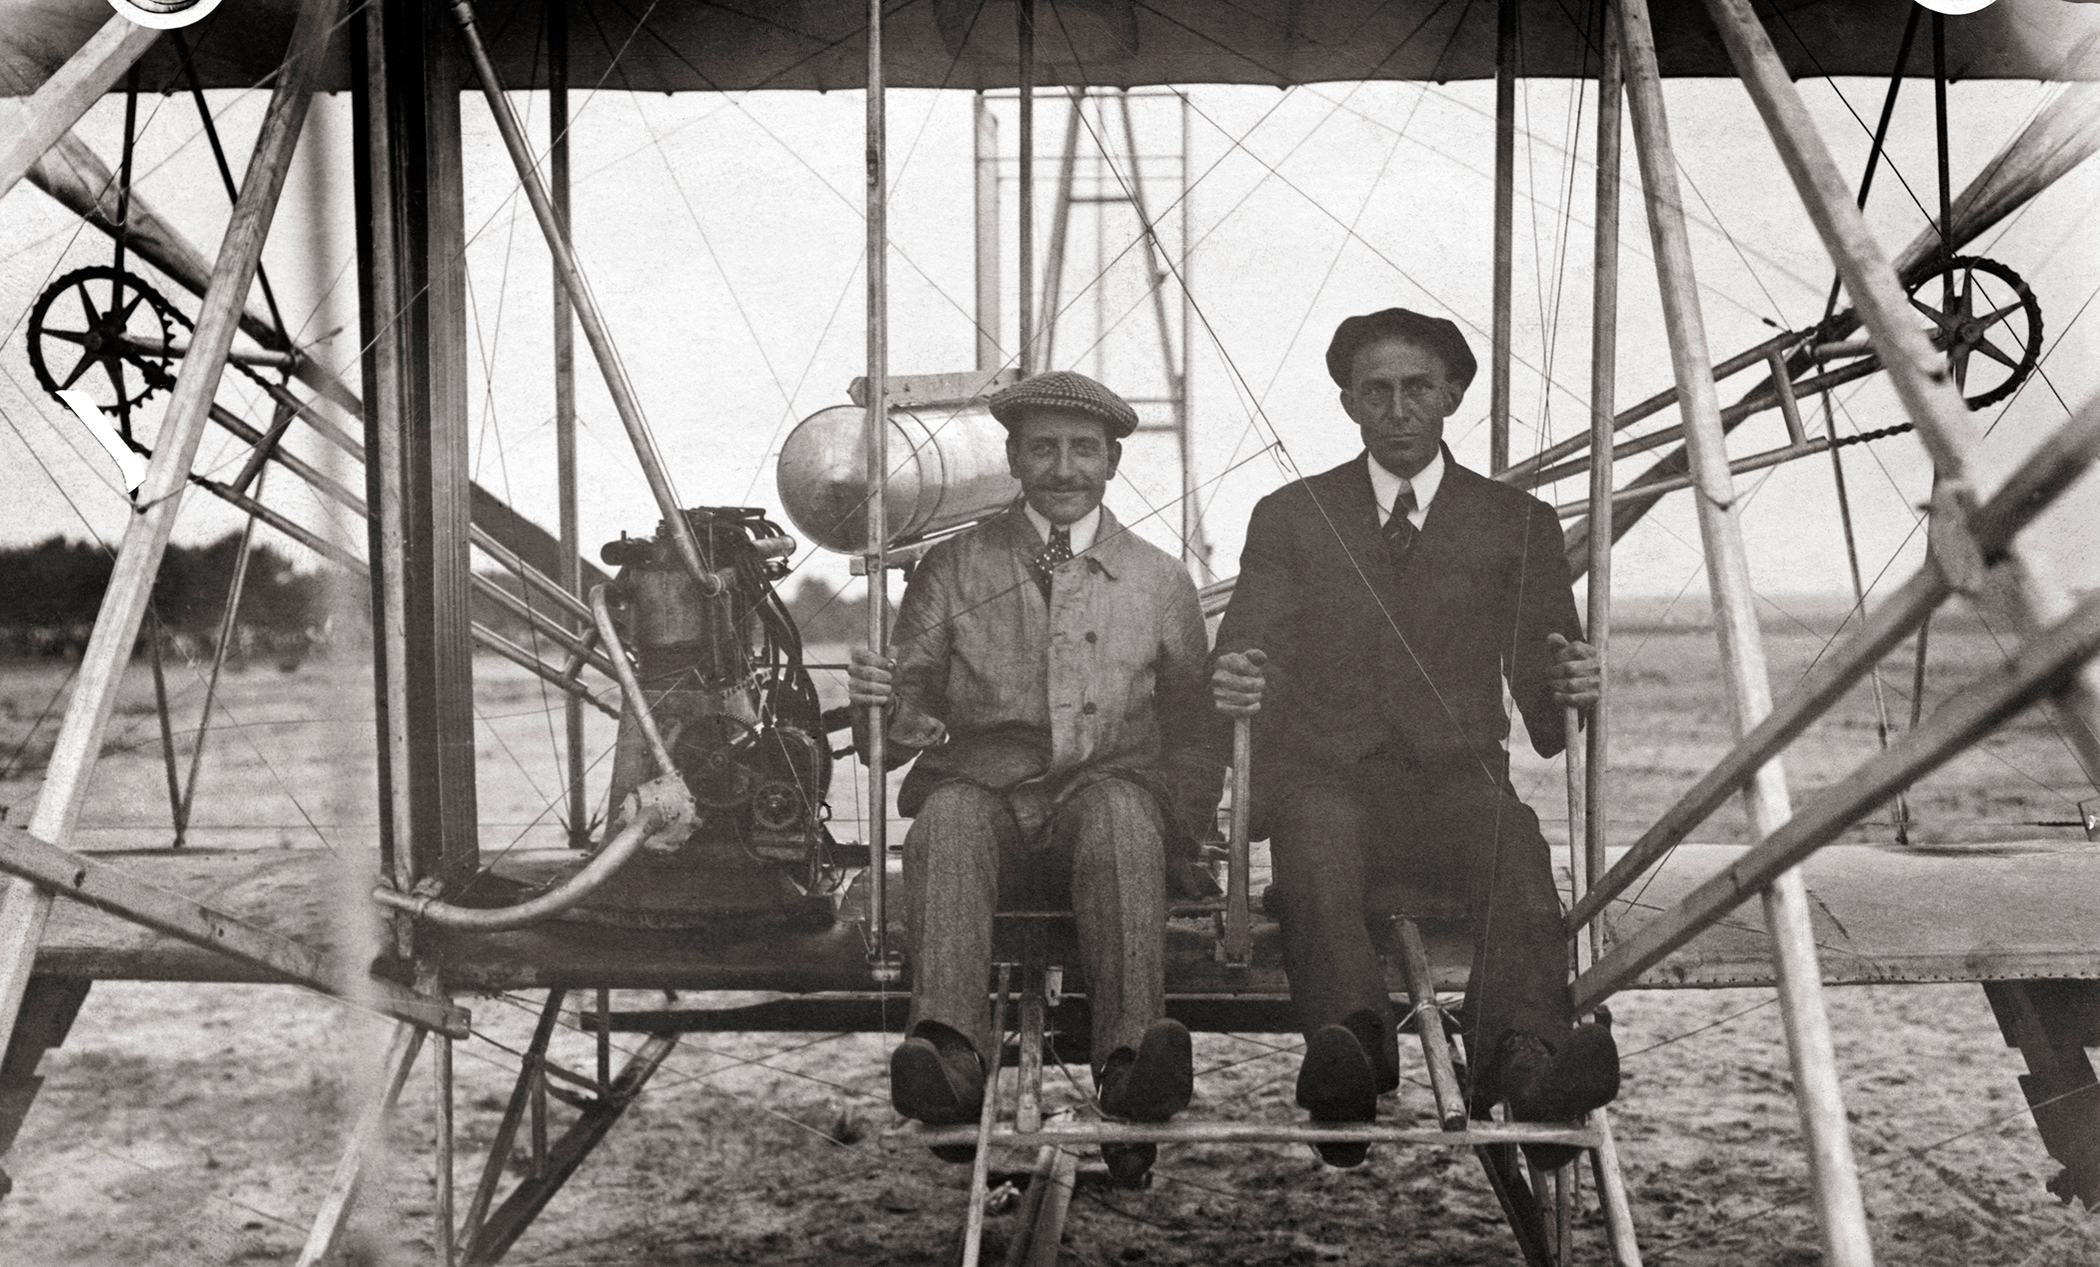 Fractrade celebrates the Presidential Proclamation on Wright Brothers Day, 2018. On December 17, 1903, two American brothers from Dayton, Ohio,   Orville   and   Wilbur   Wright, launched the first manned, powered flight on a windy beach in   Kitty   Hawk, North   Carolina  .